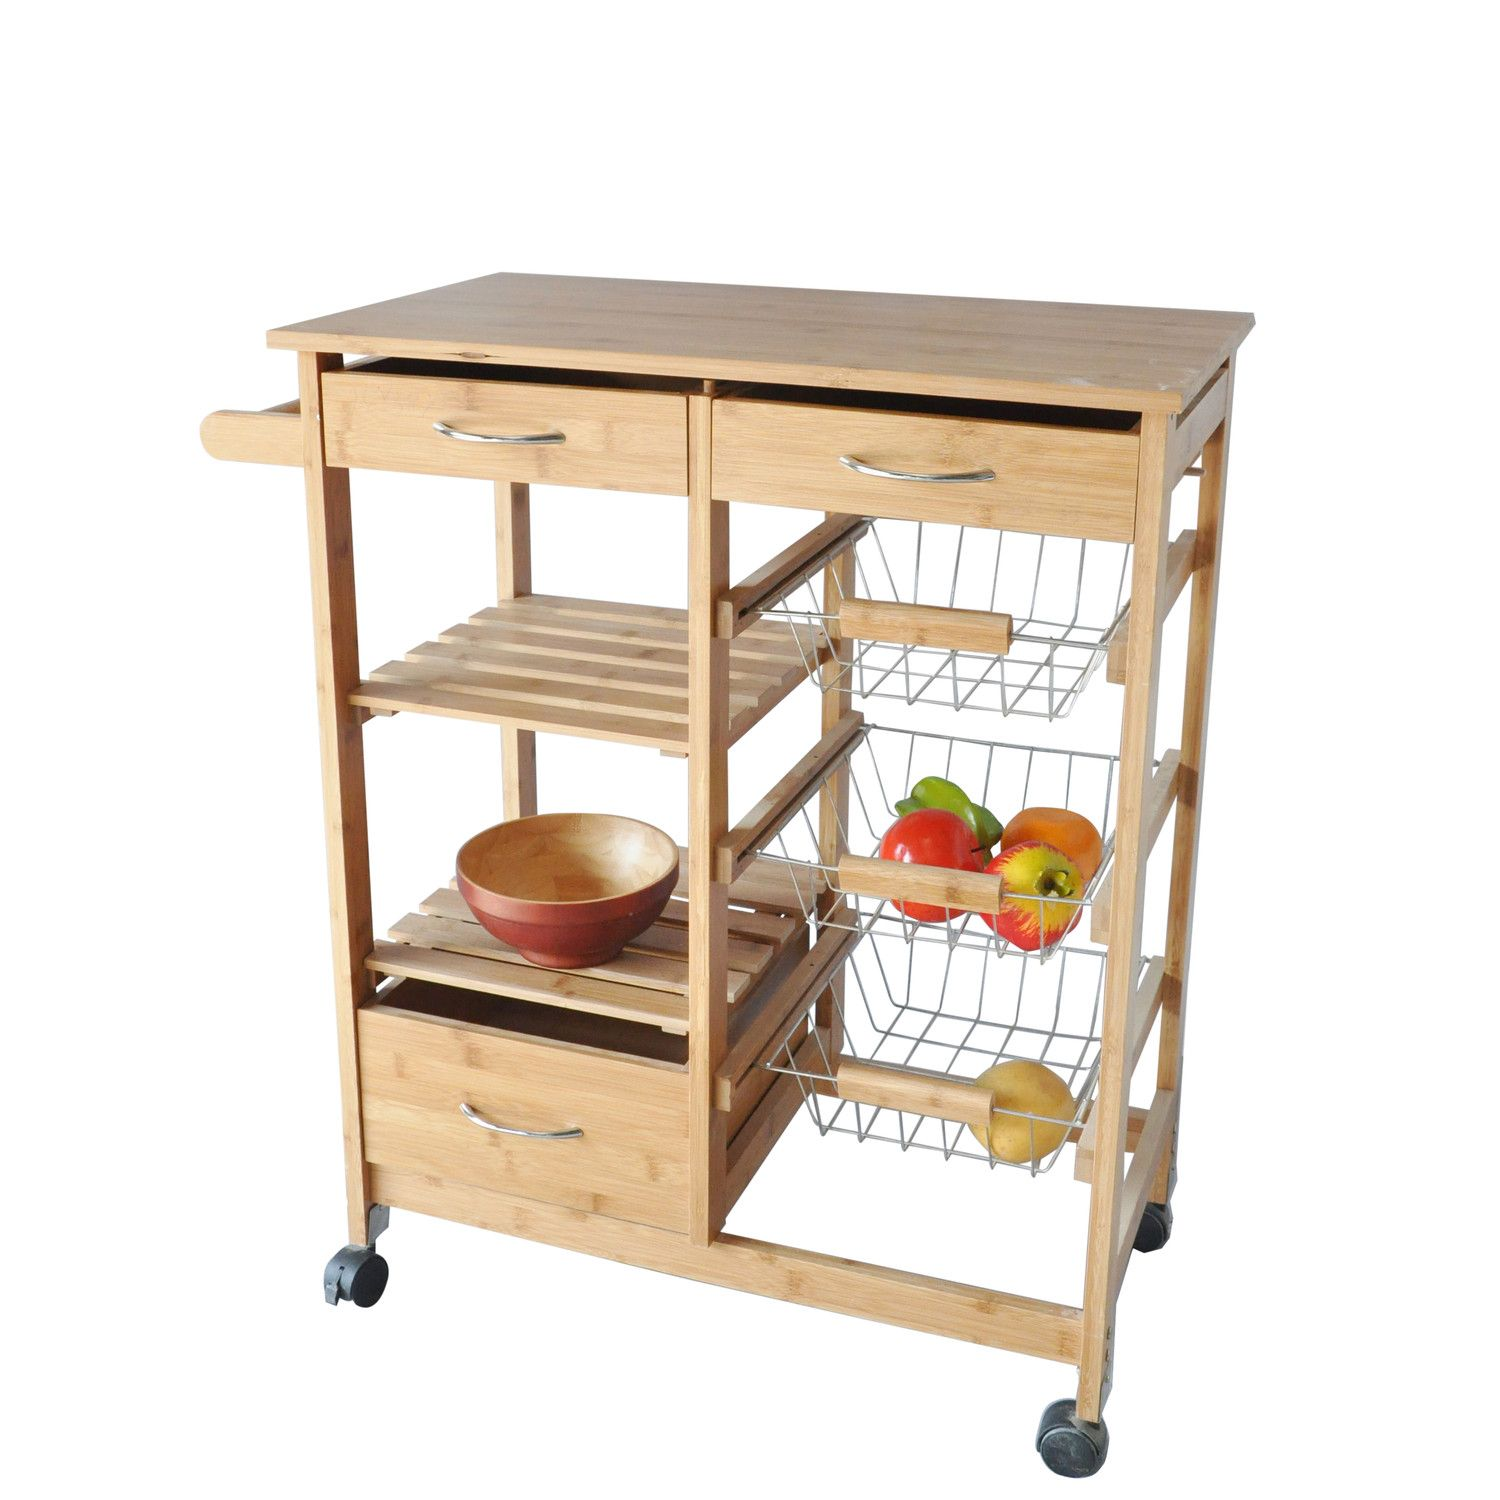 Axis International Kitchen Cart $70.99 - this could be a tiny island on kitchen island, kitchen cabinets, kitchen walls, small kitchen ideas, kitchen painting ideas, kitchen remodel, kitchen themes, kitchen units product, rustic kitchen ideas, kitchen color schemes, kitchen art, kitchen decorations, apartment kitchen ideas, kitchen paint color ideas, dining room ideas, kitchen accessories, backsplash ideas, kitchen design ideas, kitchen decor, yellow kitchen ideas,